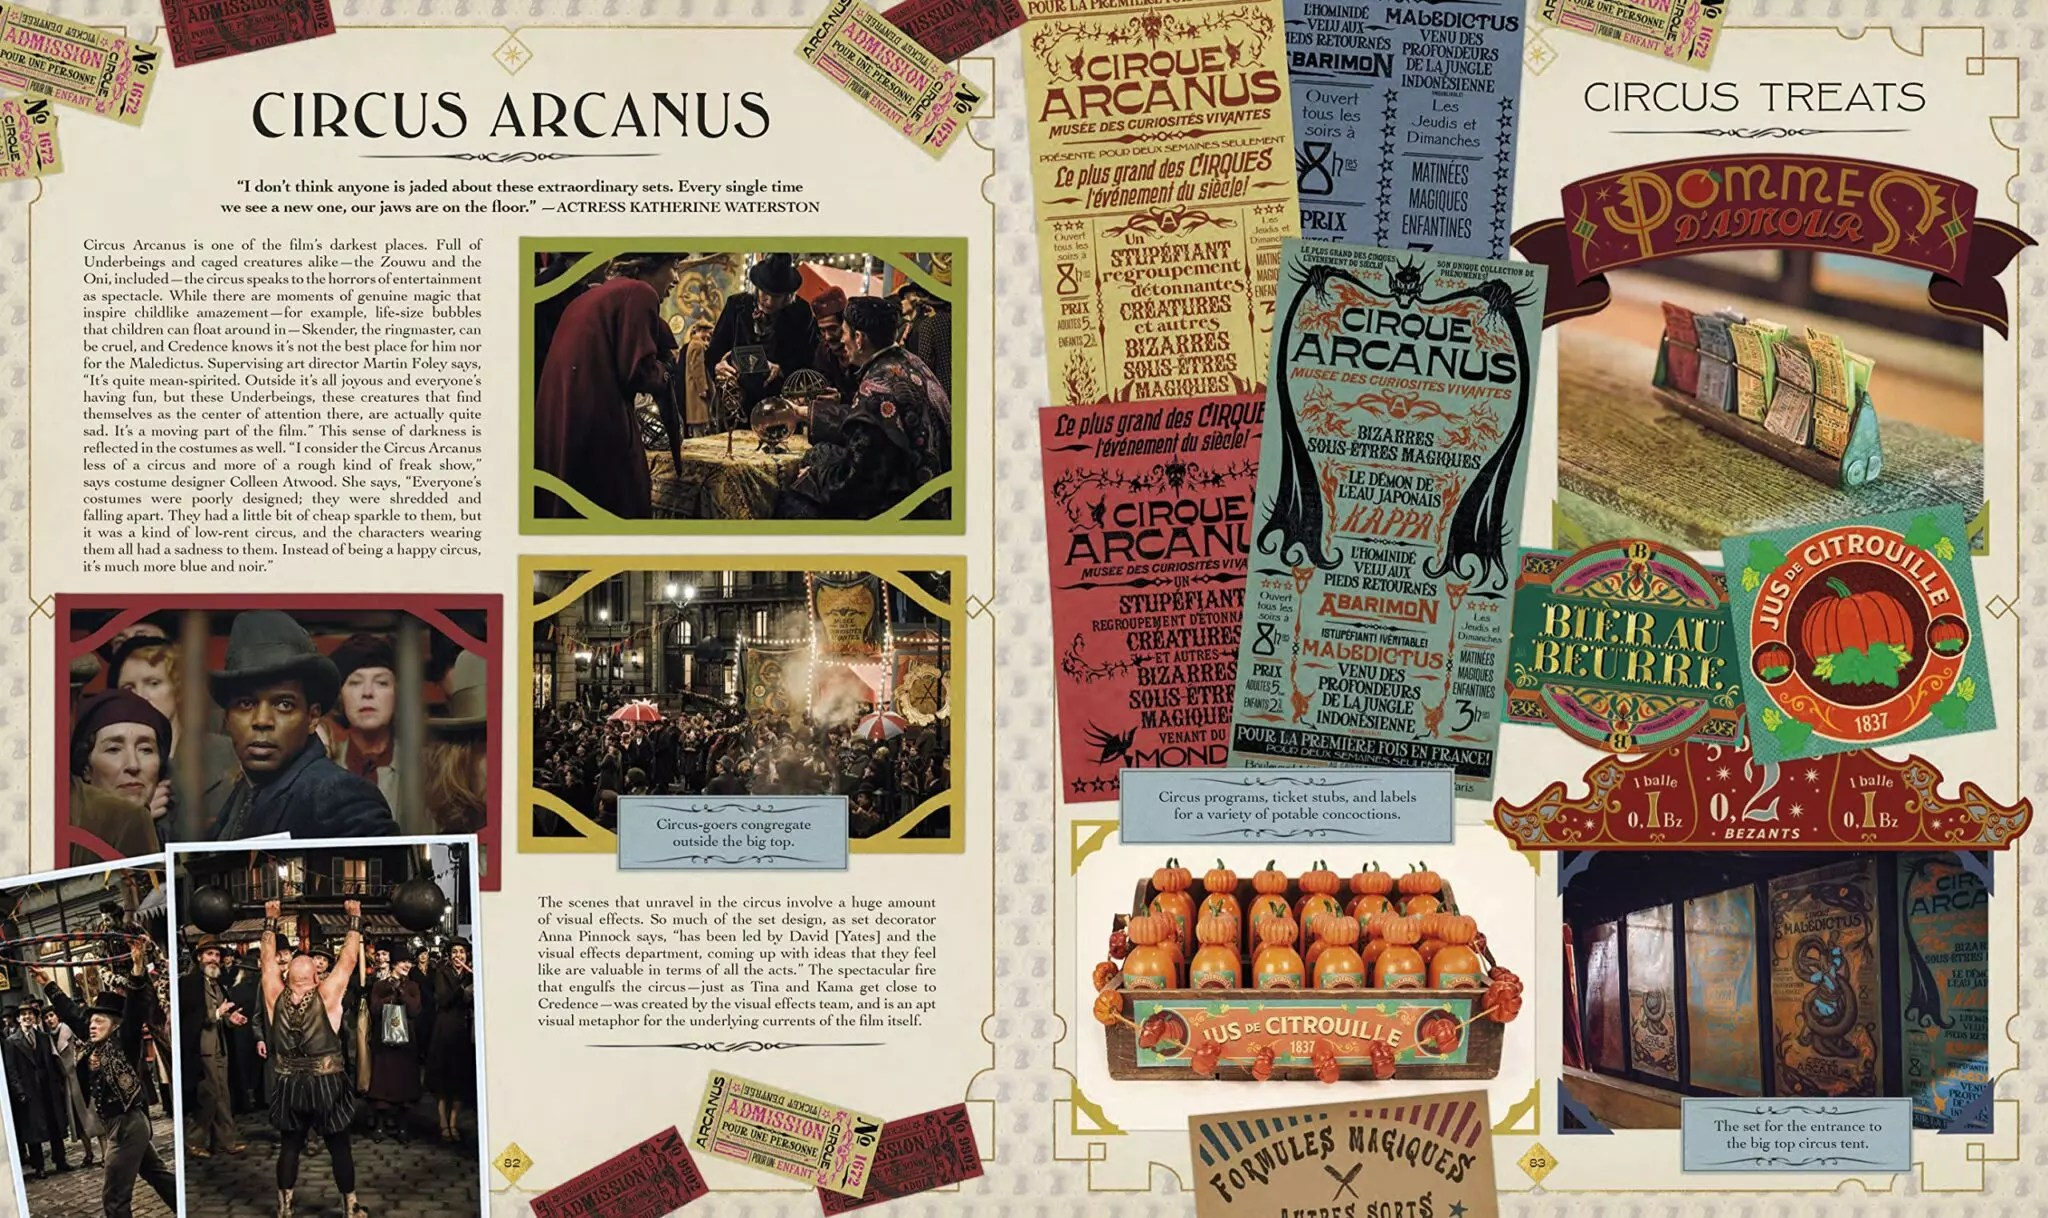 the archive of magic circus